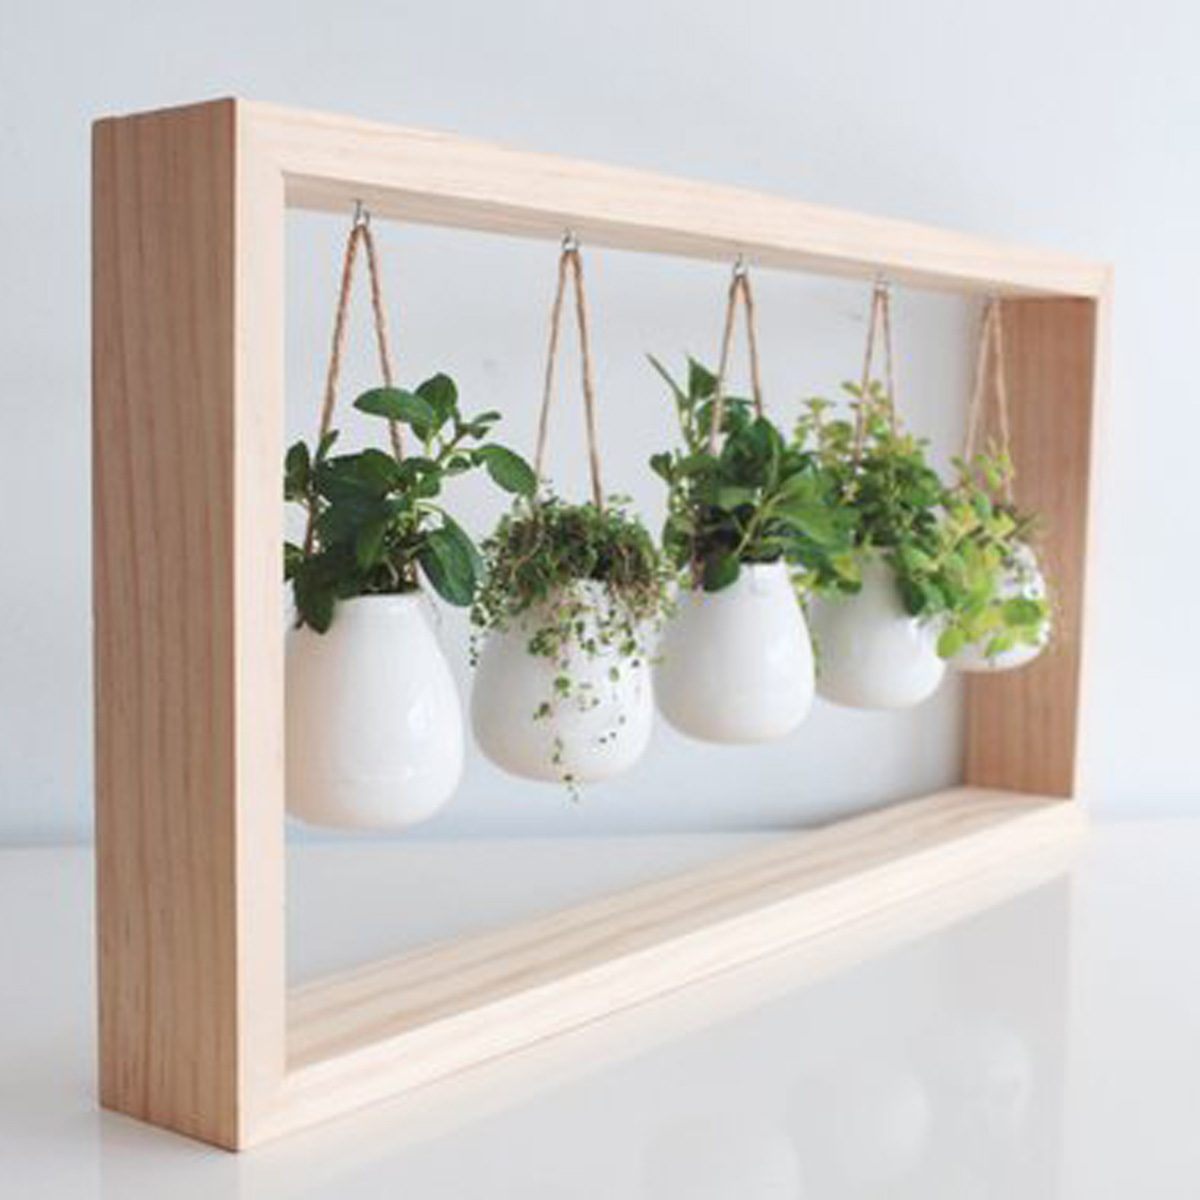 Planter For Herbs 10 Charming Indoor Herb Garden Planters Family Handyman